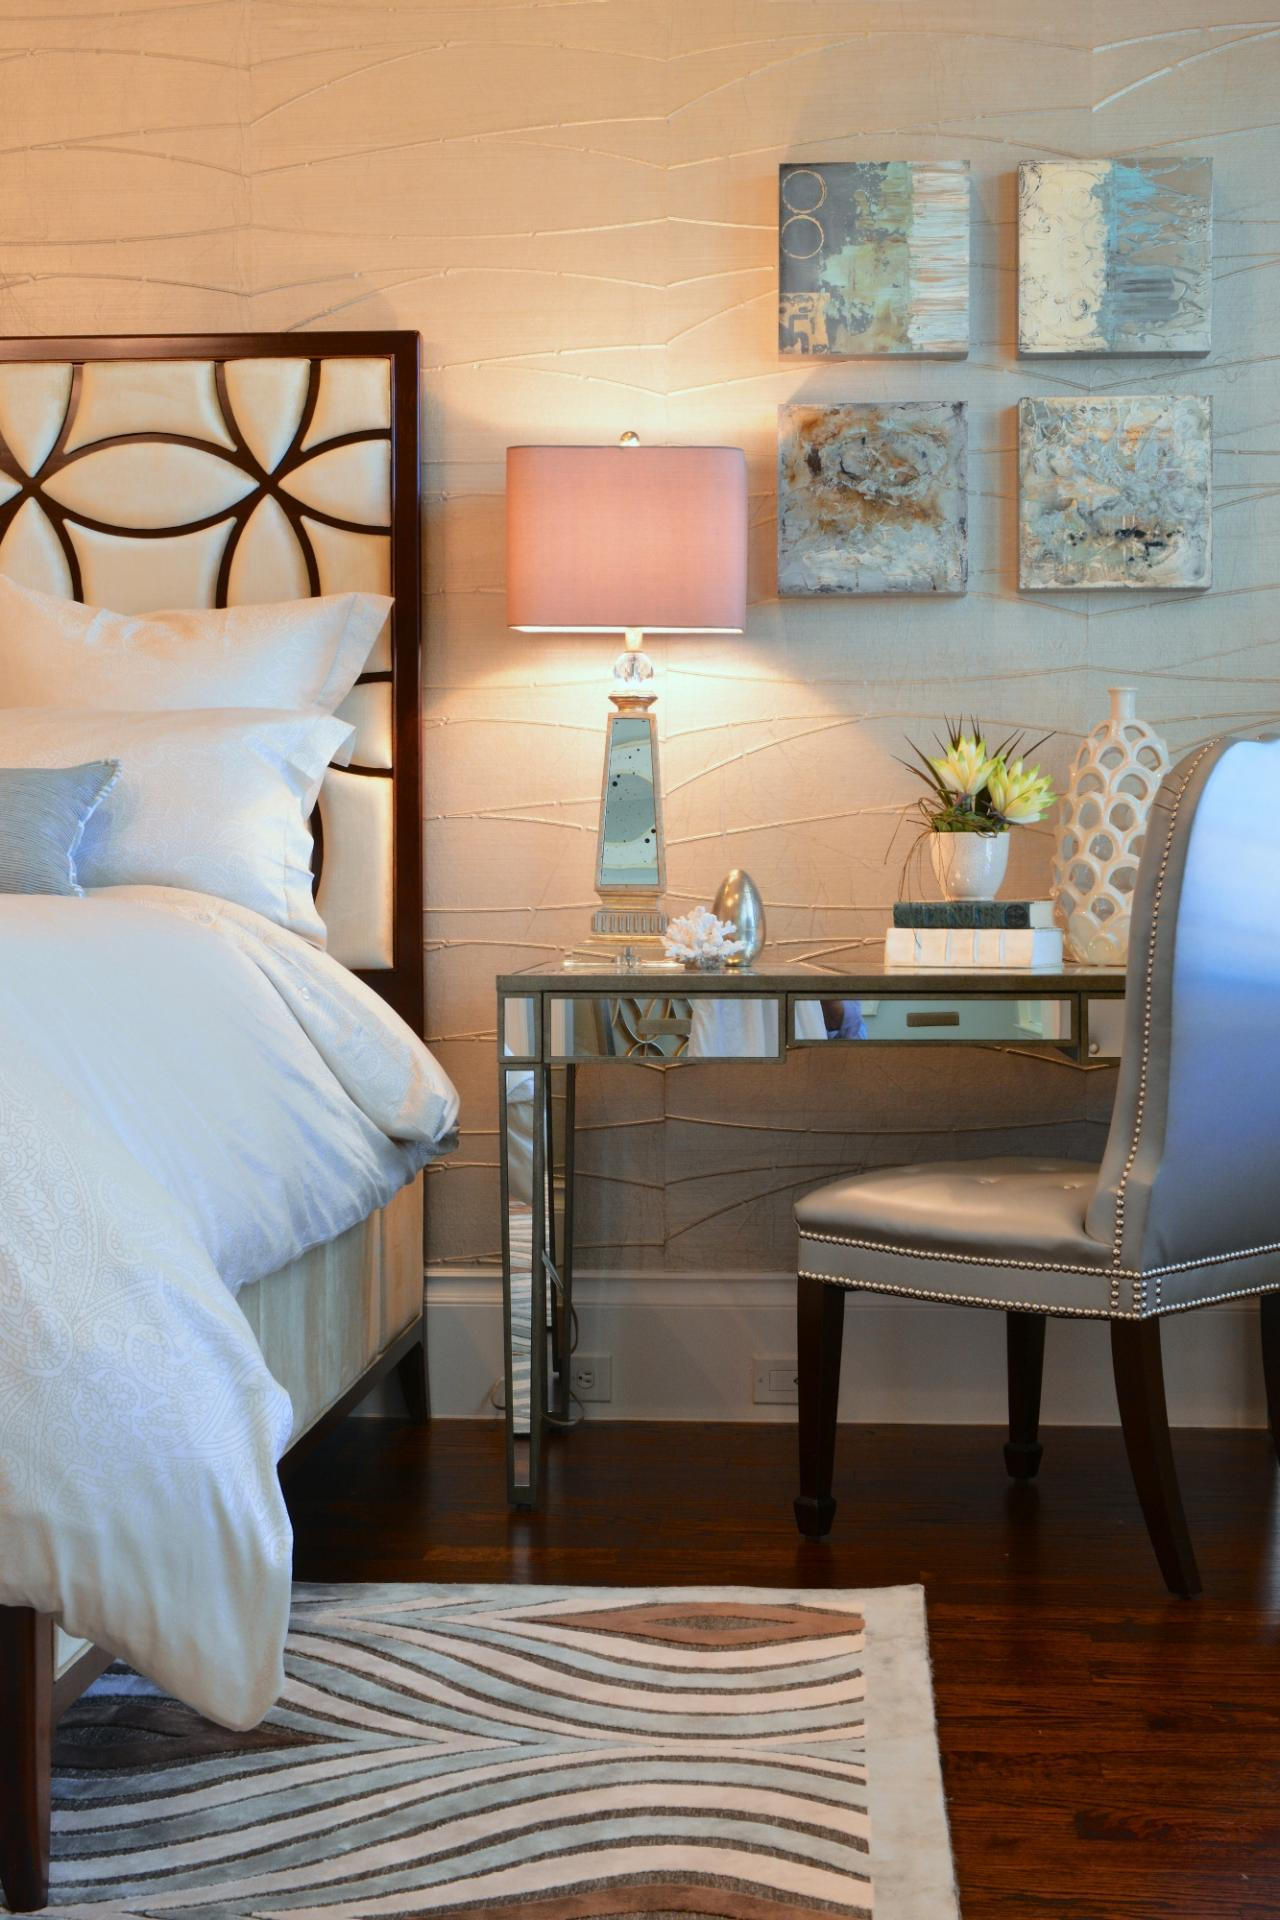 14 ideas for a small bedroom hgtv 39 s decorating design blog hgtv. Black Bedroom Furniture Sets. Home Design Ideas